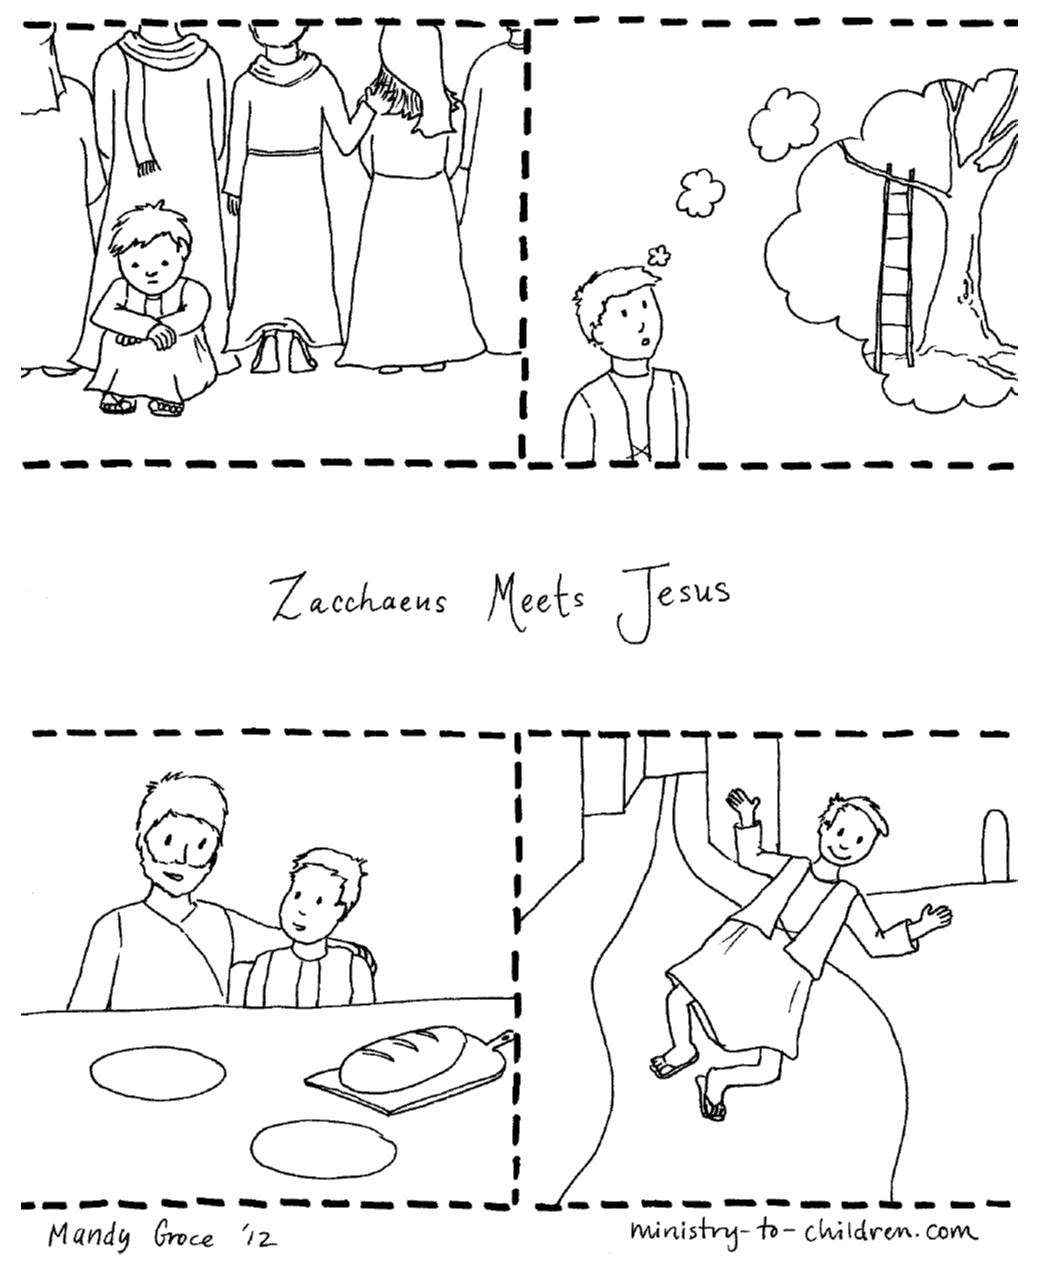 Coloring pages zacchaeus - Coloring Pages Zaccheus Jesus And Zacchaeus Coloring Page Pictures